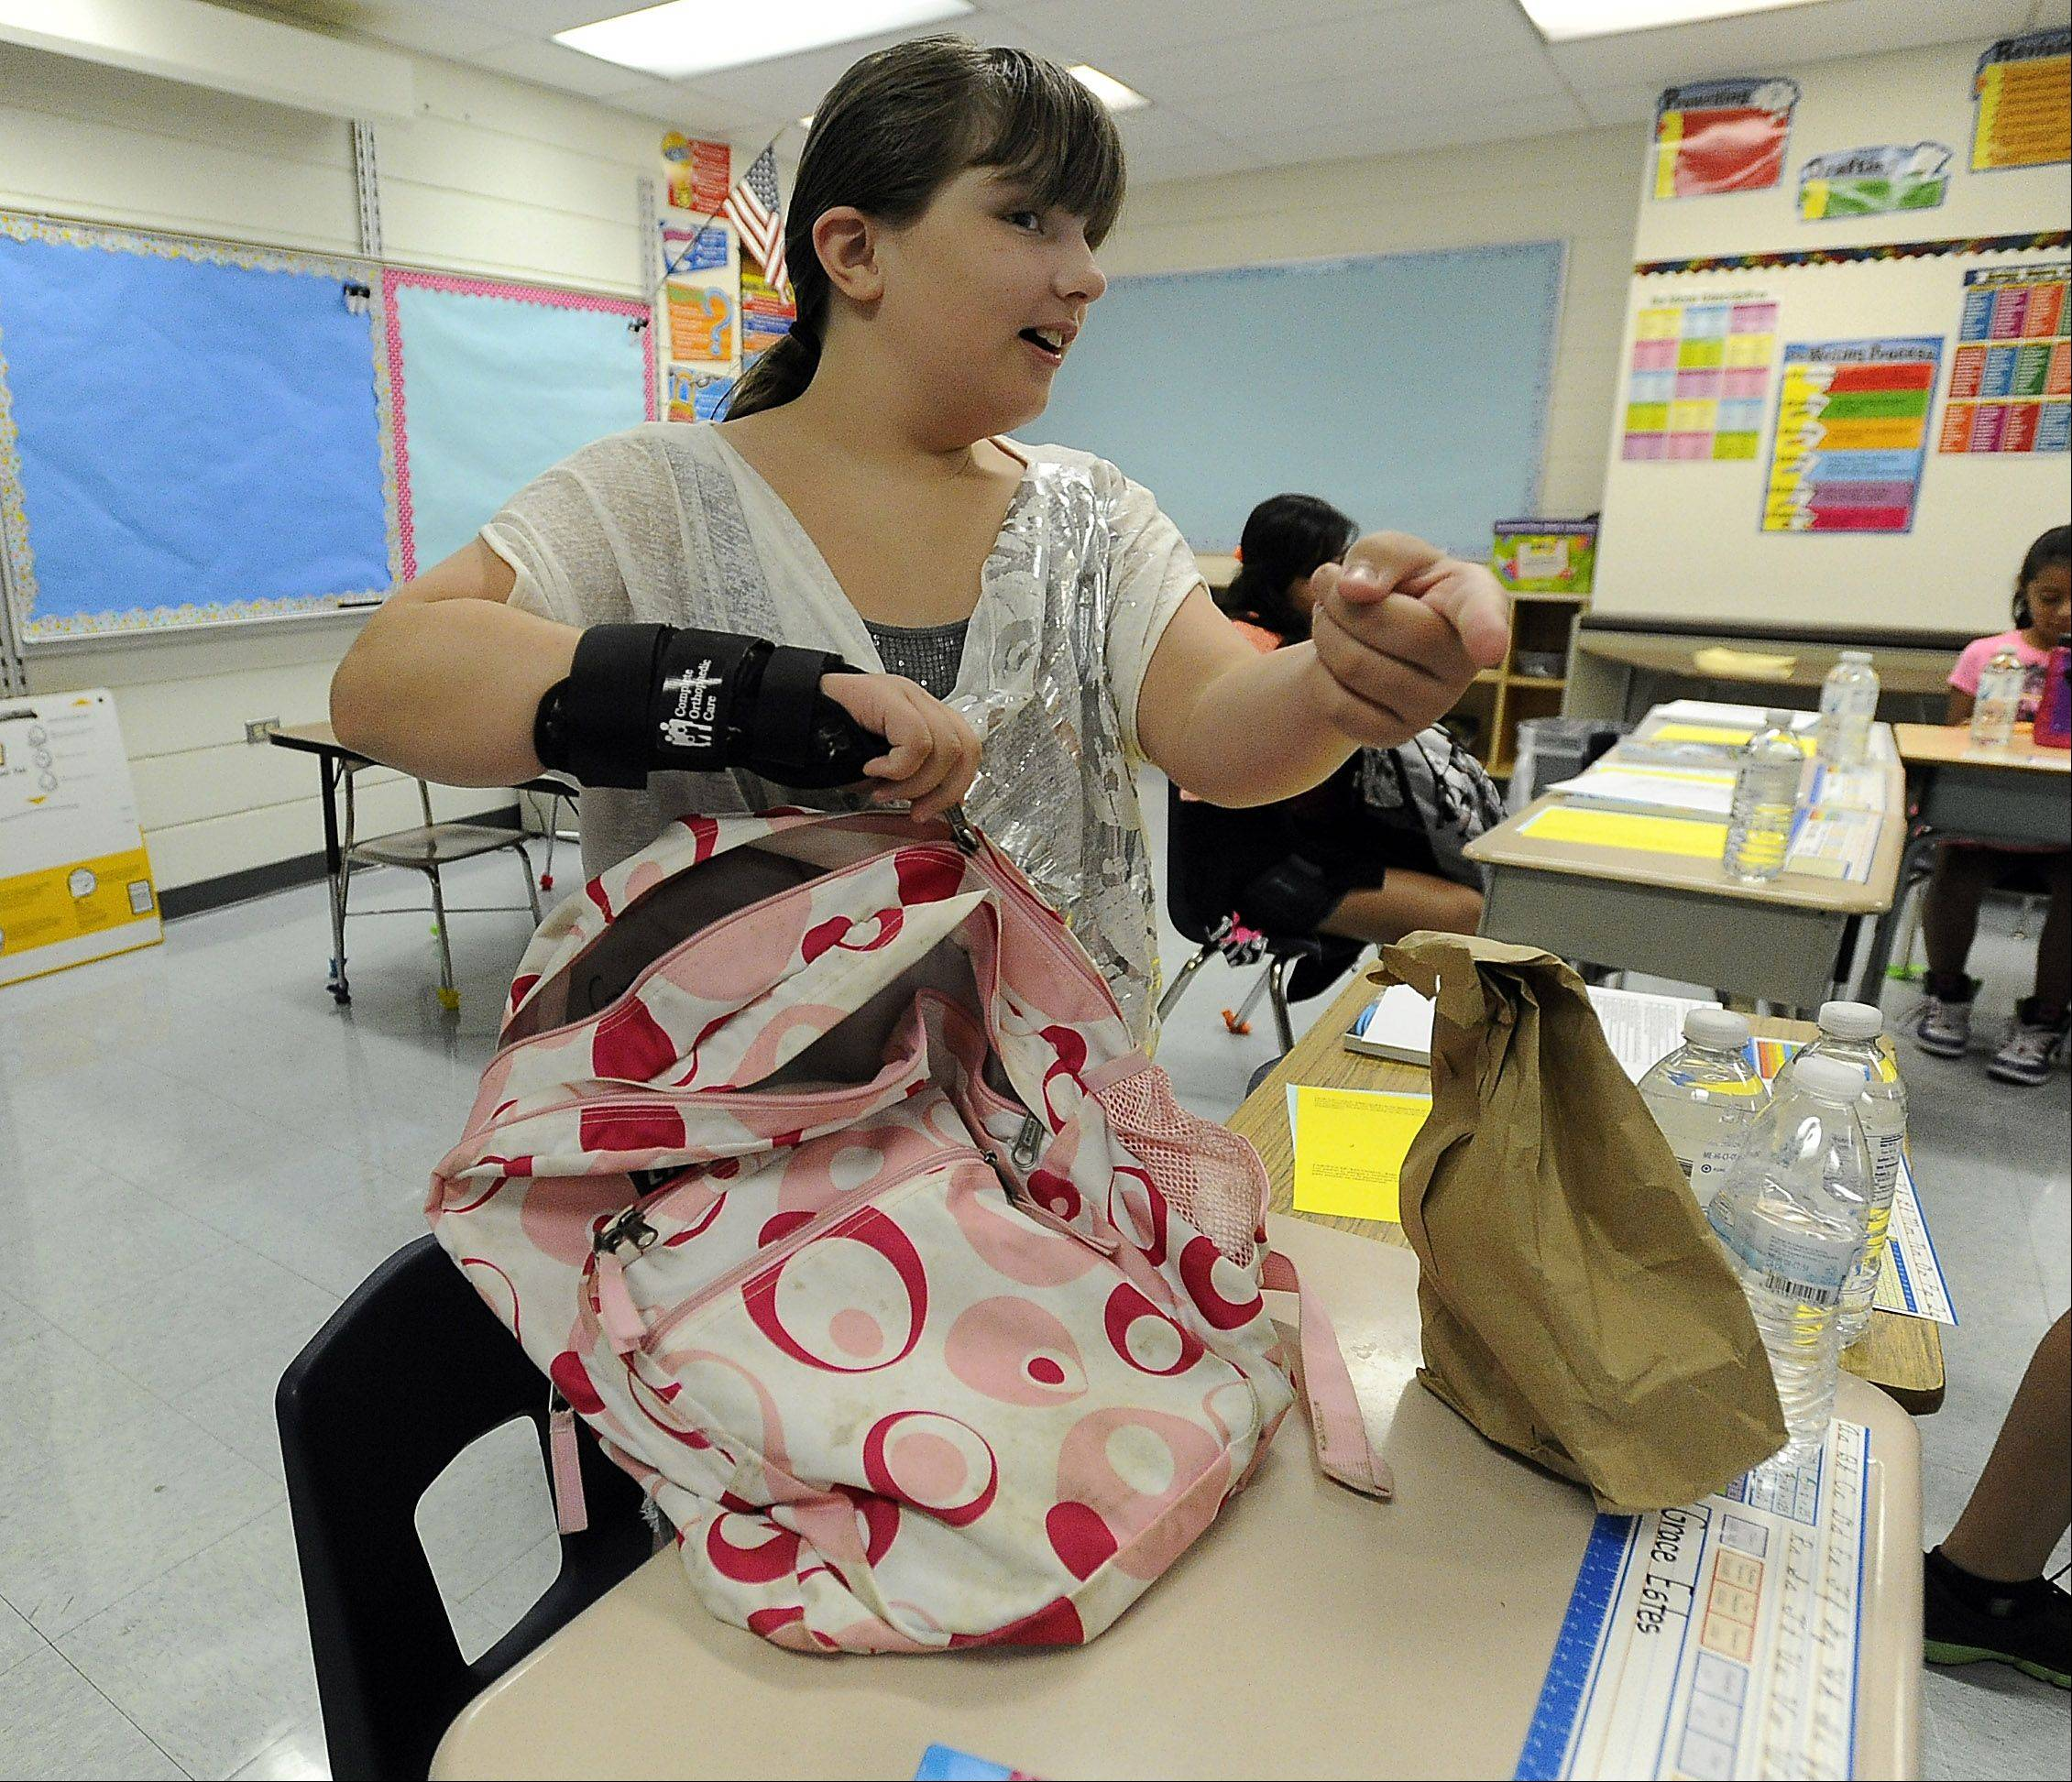 Grace Estes, 9, unpacks her school supplies on her first day back to school at Field Elementary in Wheeling on Wednesday.